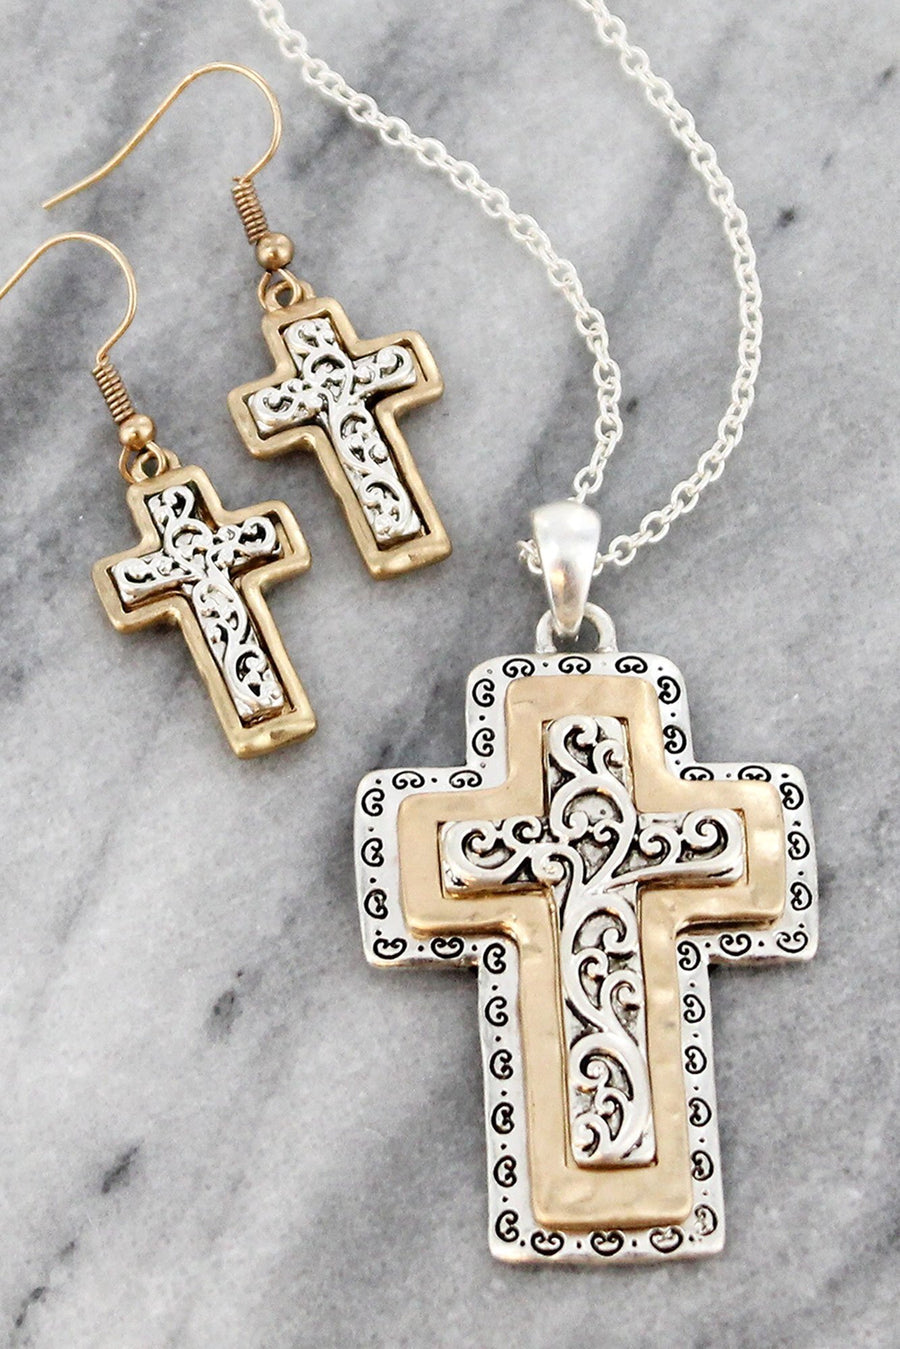 Worn Two-Tone Scroll Layered Cross Necklace and Earring Set